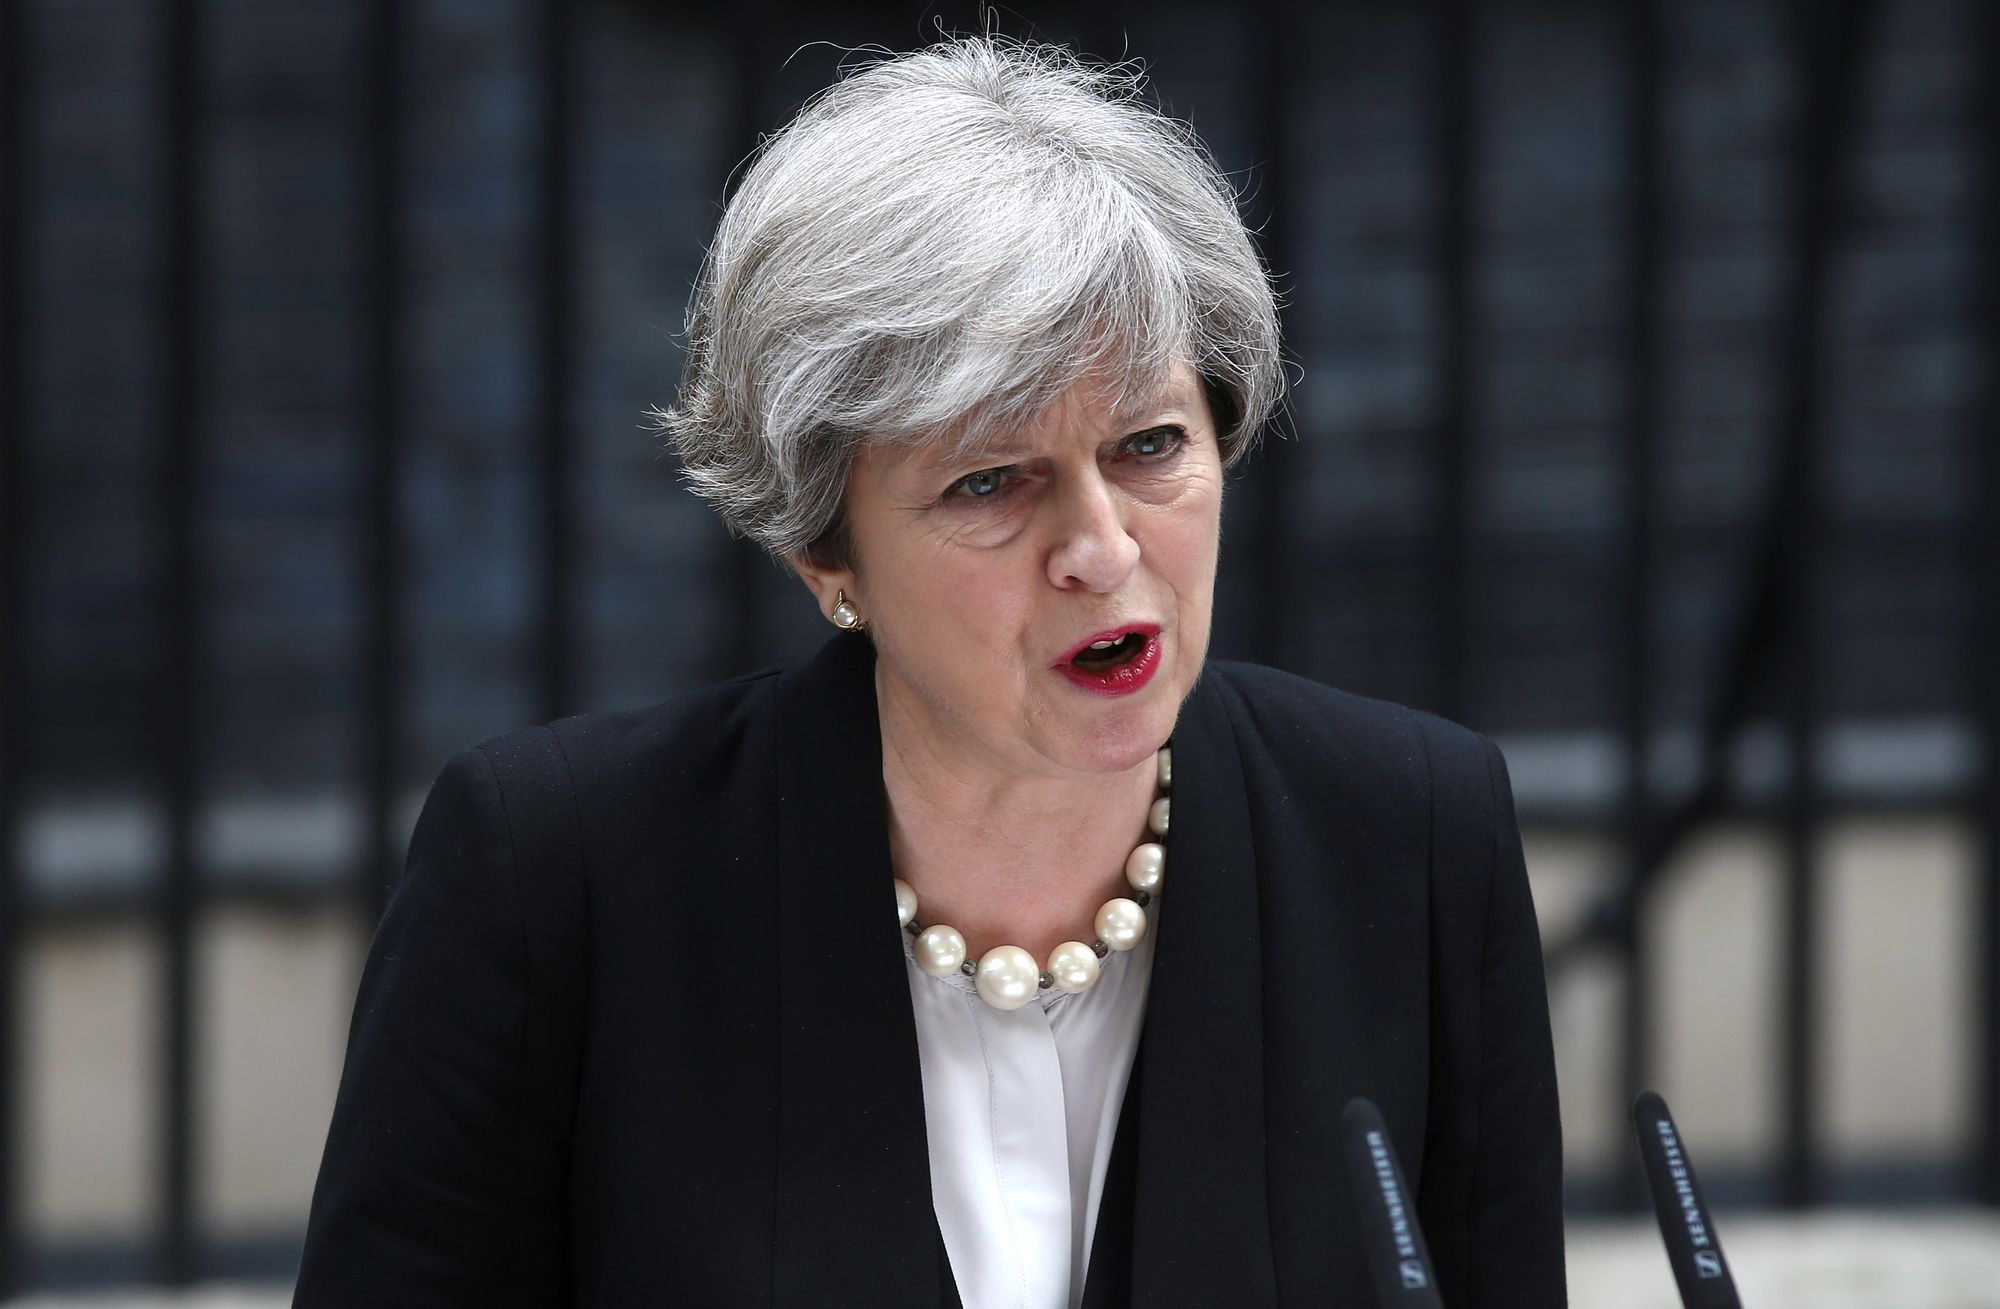 Theresa May lors de son allocution au lendemain de l'attentat, devant le 10 Downing Street.